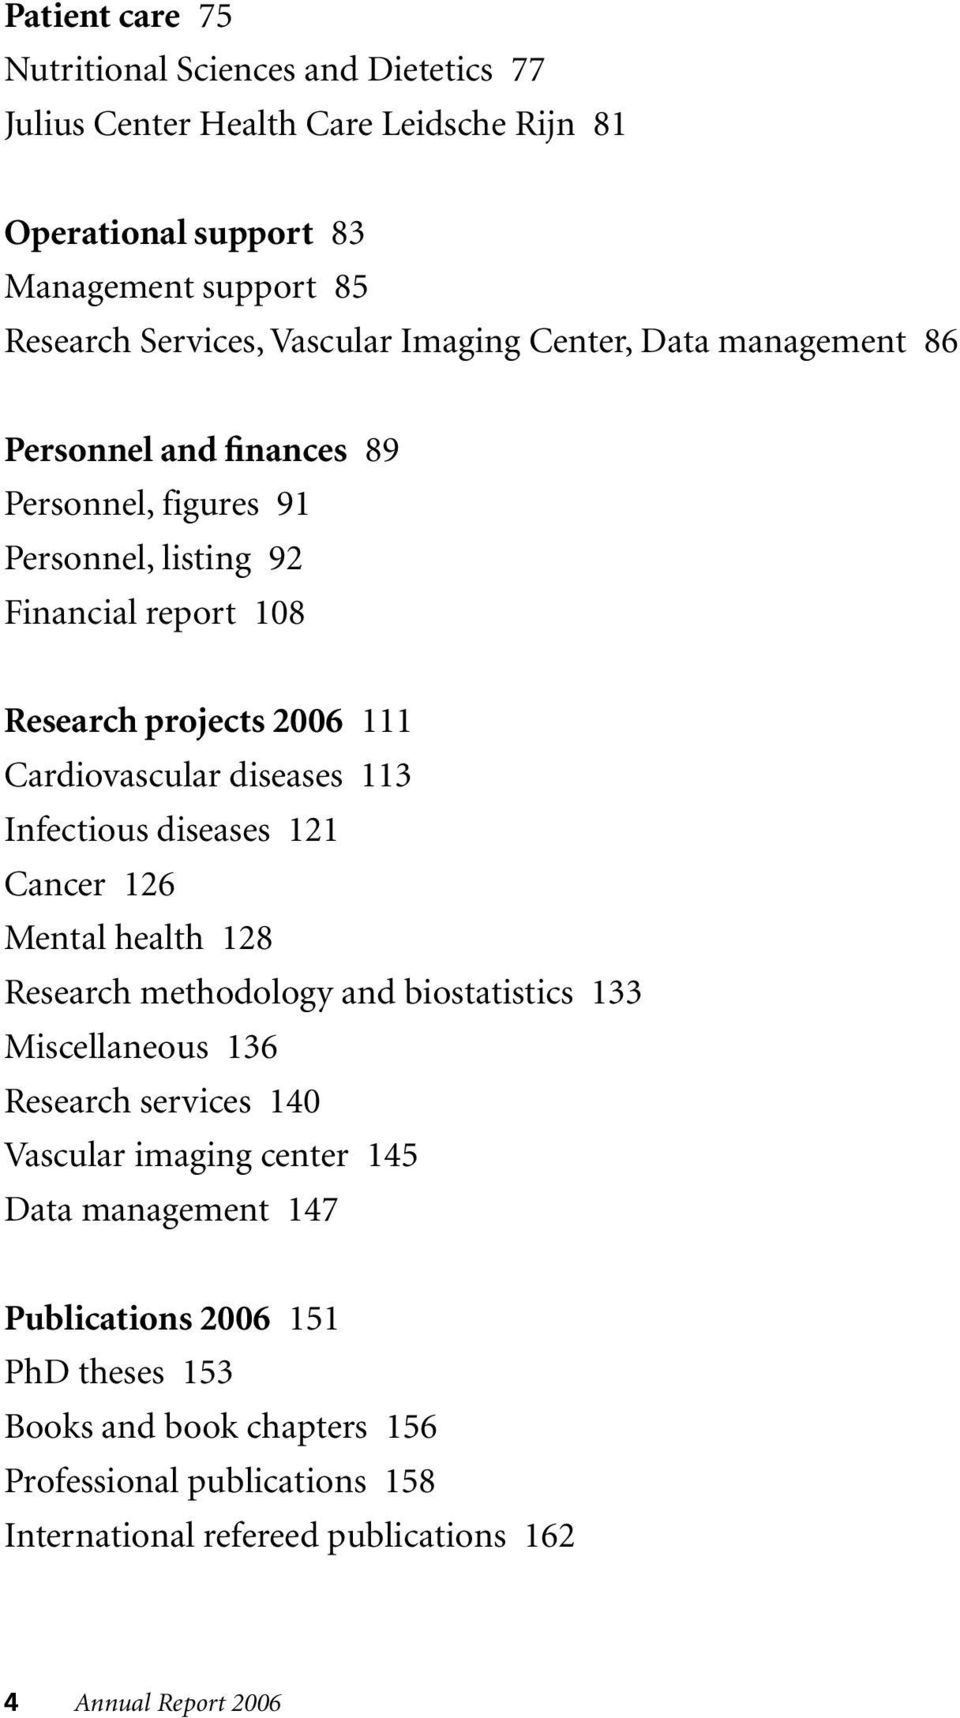 diseases 113 Infectious diseases 121 Cancer 126 Mental health 128 Research methodology and biostatistics 133 Miscellaneous 136 Research services 140 Vascular imaging